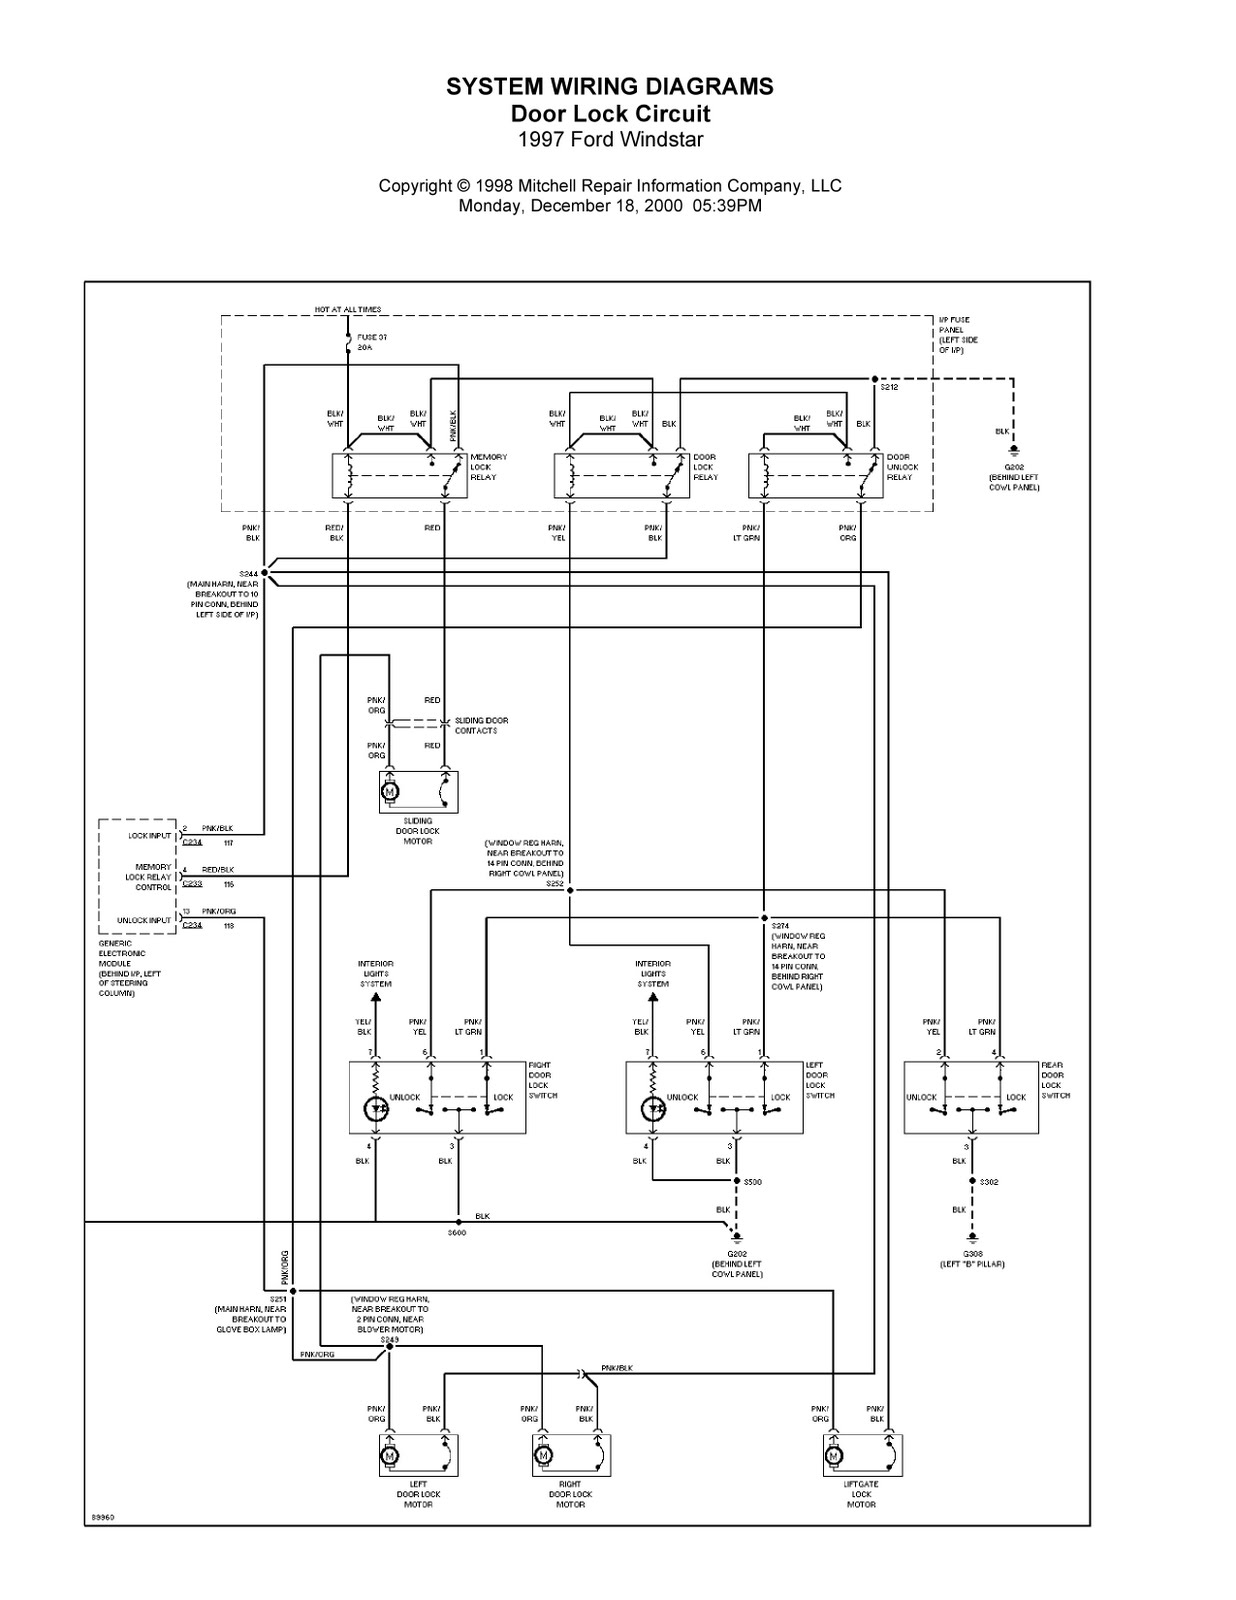 2001 Ford Windstar Wiring Diagram - Ford Windstar Wiring Diagram - 2001 Ford Windstar Wiring Diagram